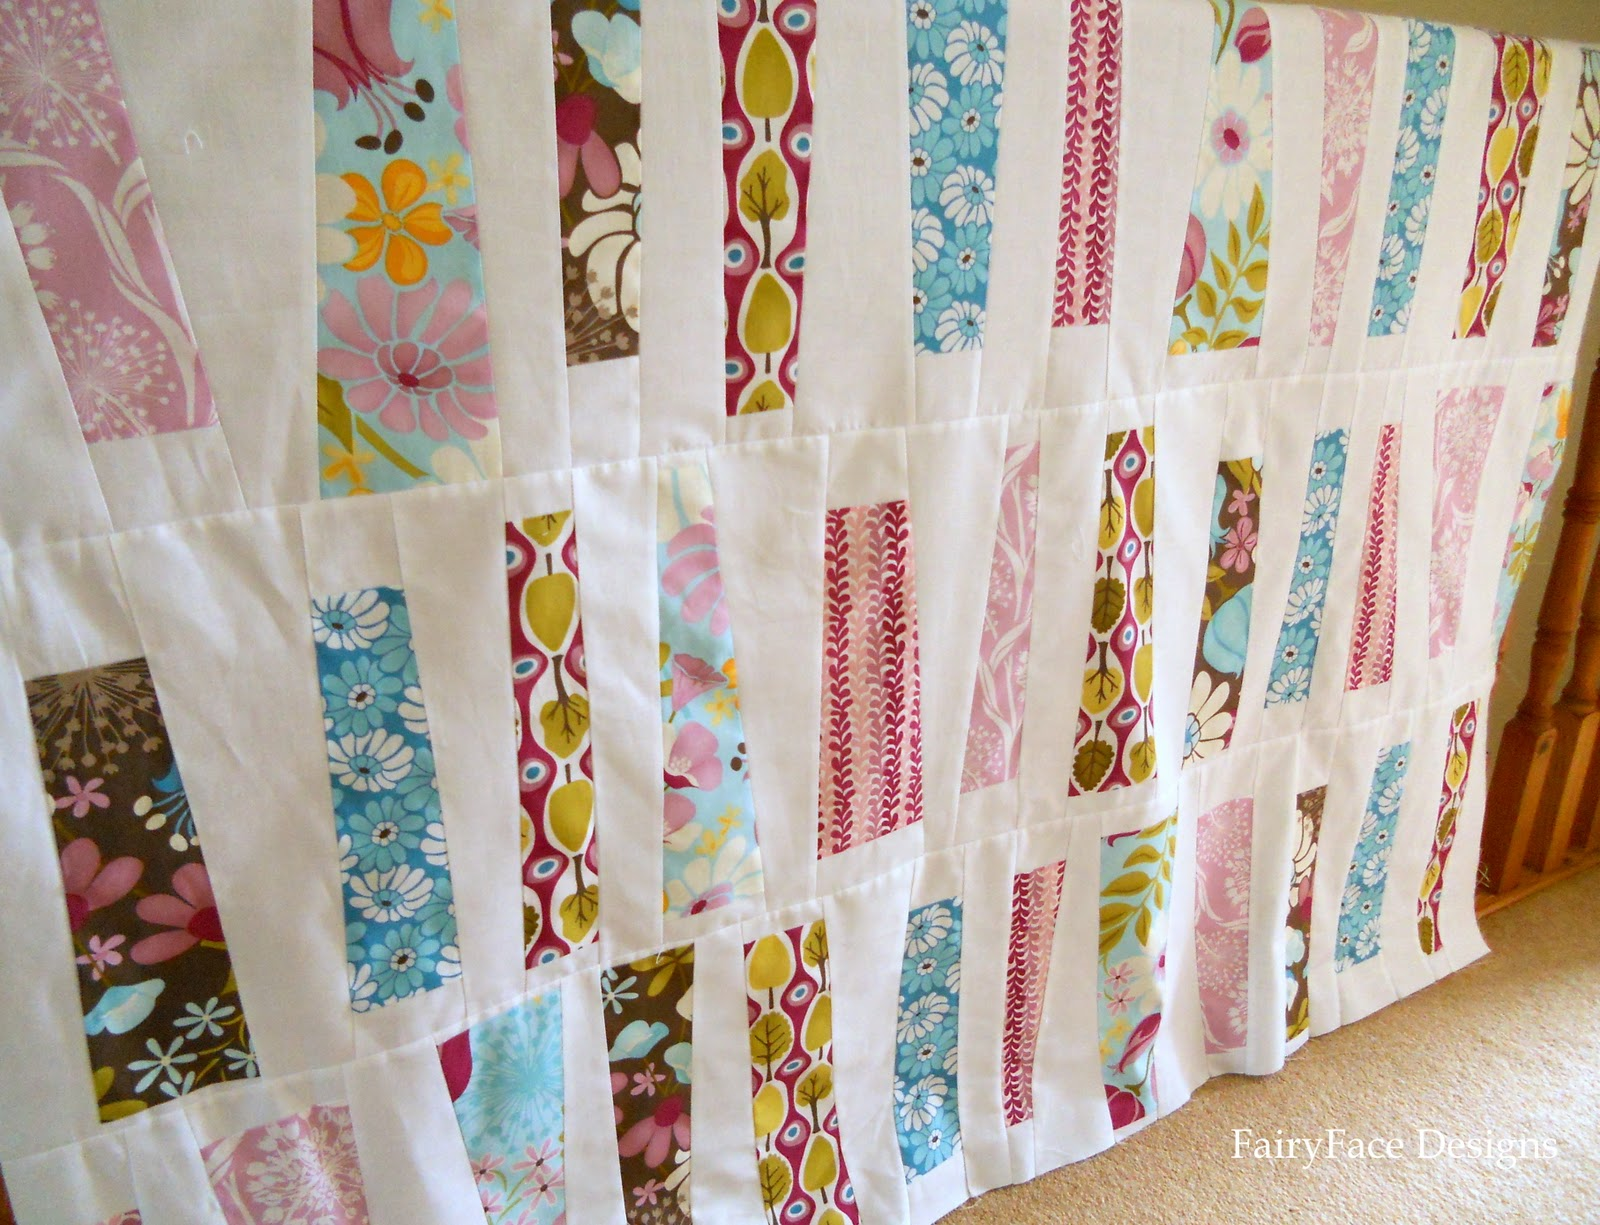 Fairyface Designs Summer Sewing Wrap Up